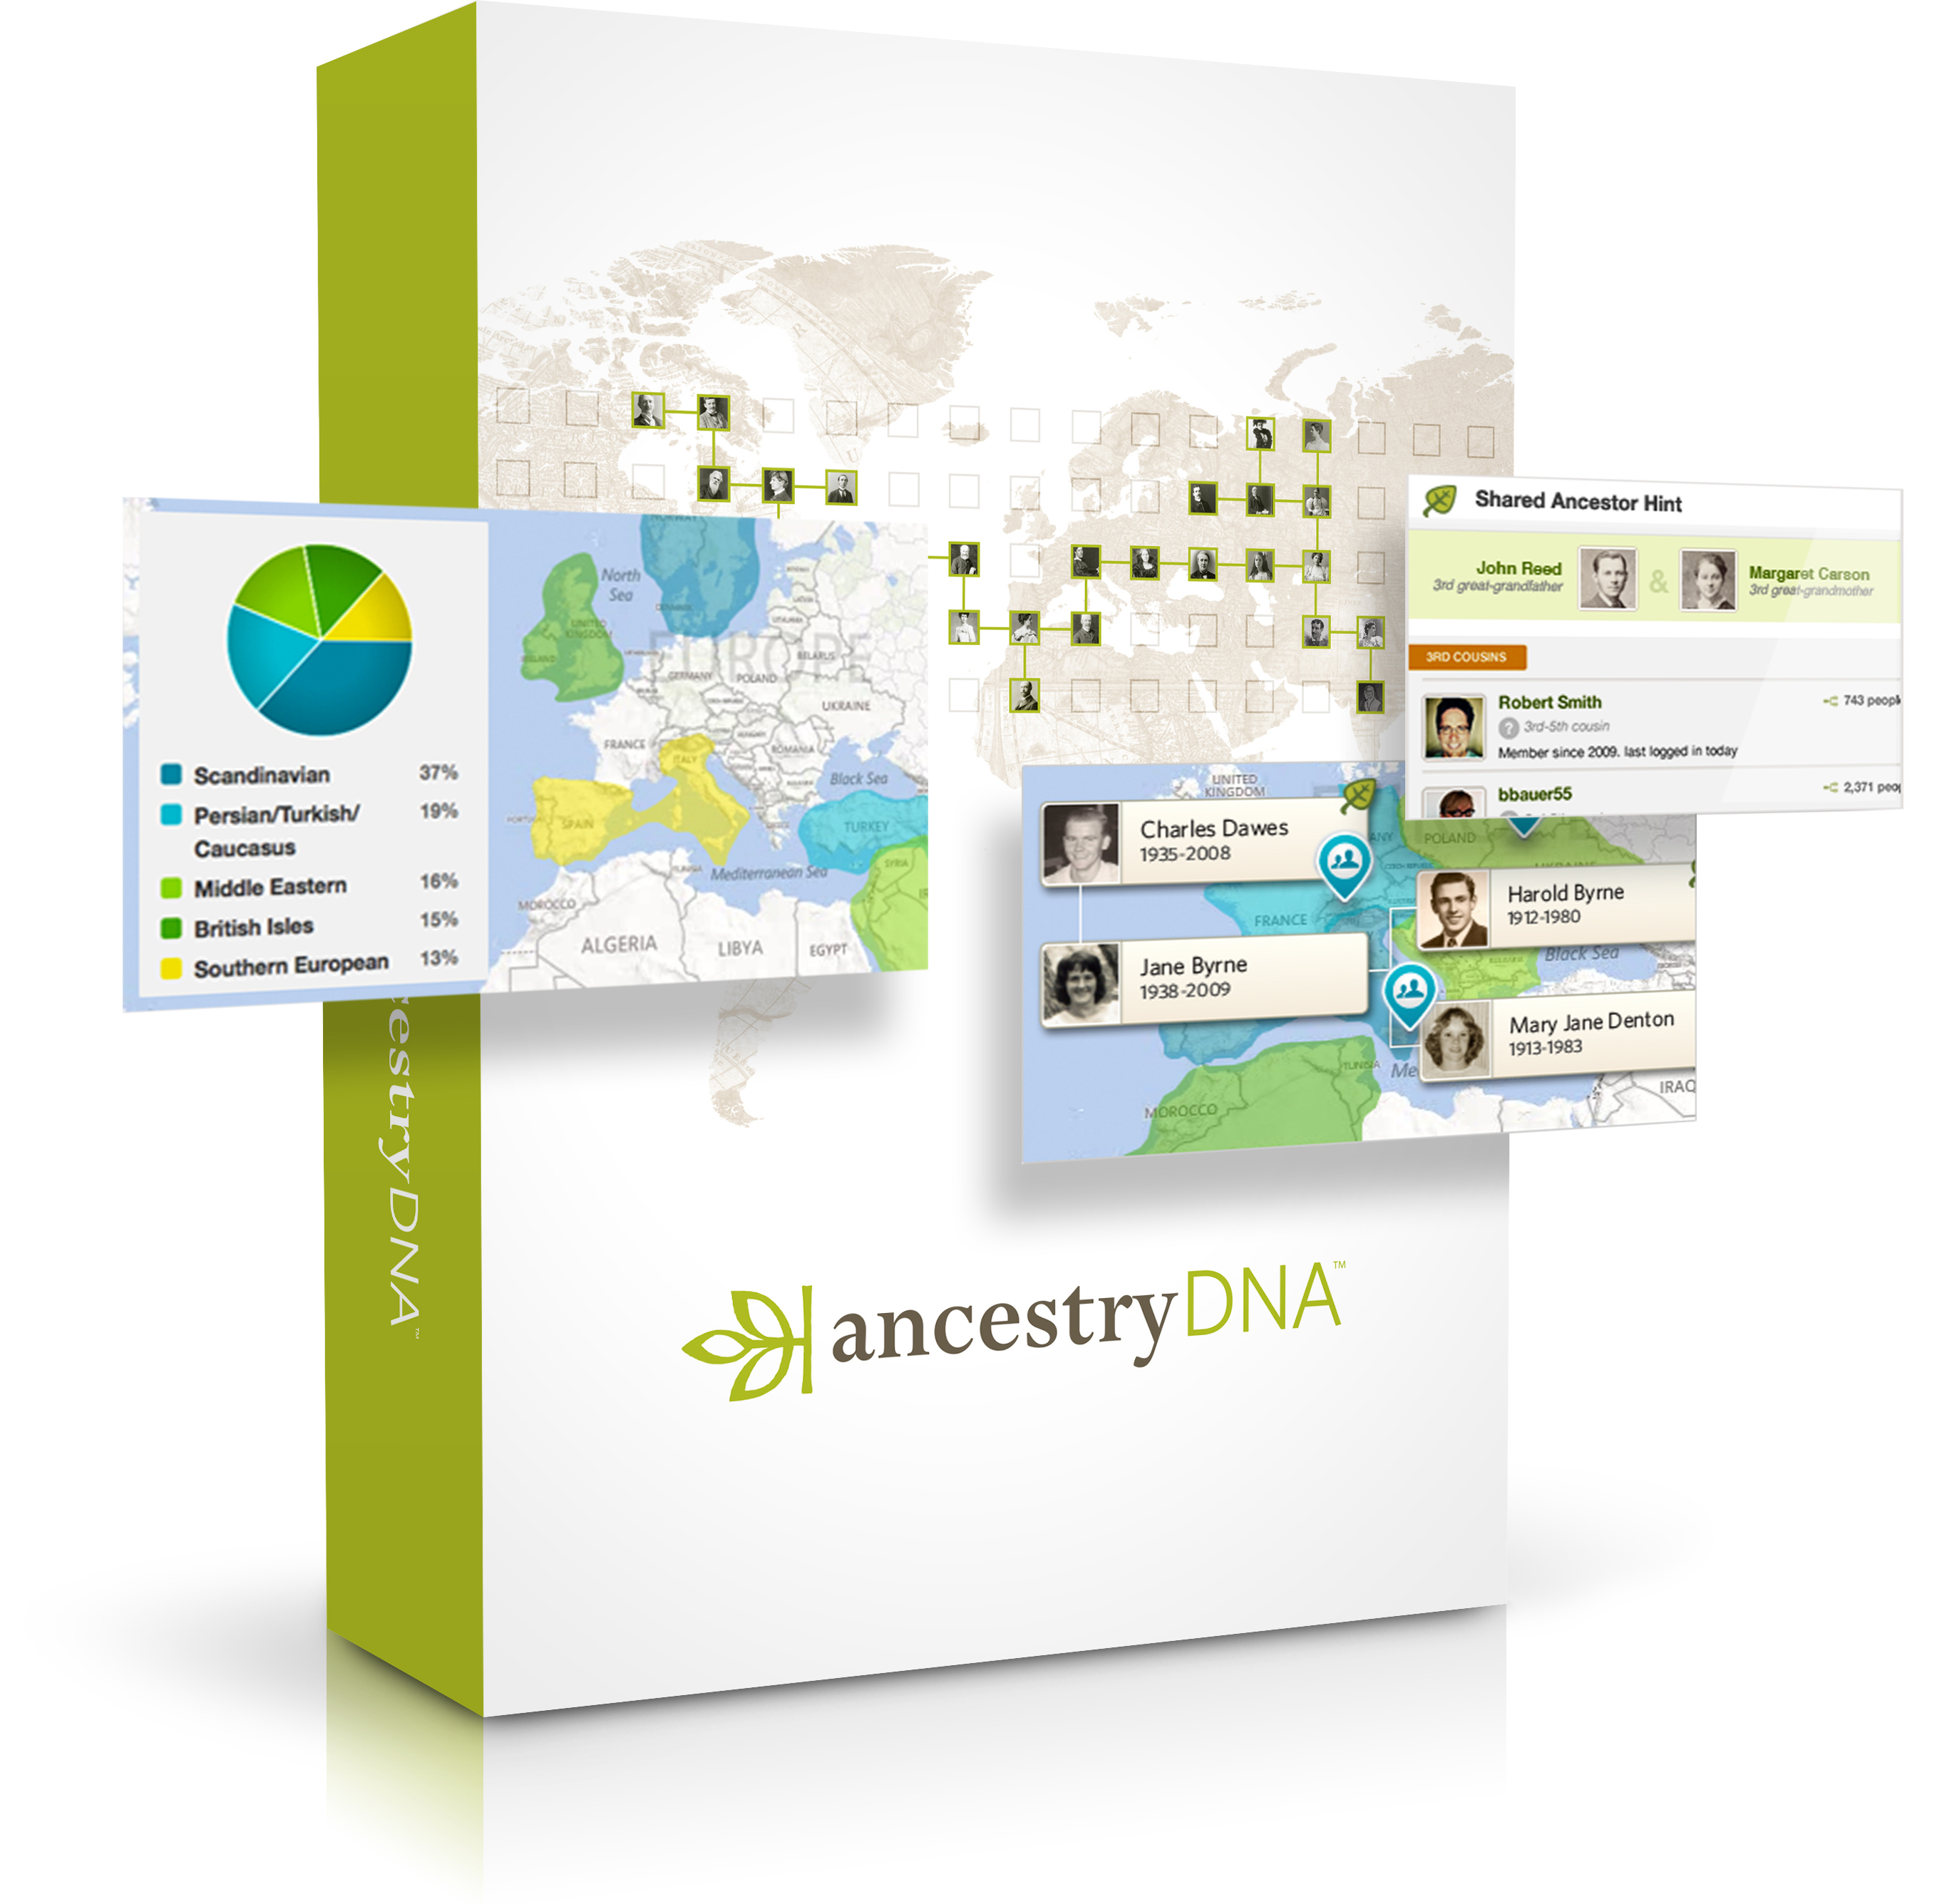 The Best Dna Test Kits In The Uk Ancestrydna 23andme And More